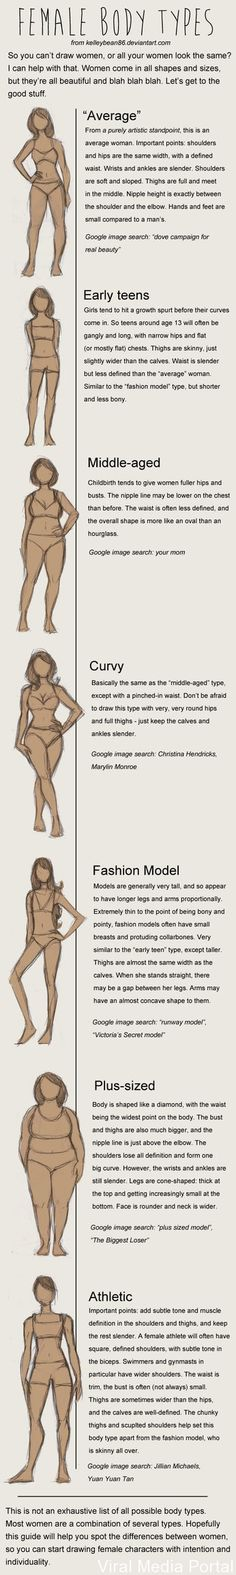 Draw Female Body Types by on deviantART. I know it's meant for drawing, but. Does seem more useful than drawing tips. Comic Art, Sketches, Character Design, Drawing People, Art Drawings, Drawings, Drawing Tutorial, Art, Art Tutorials